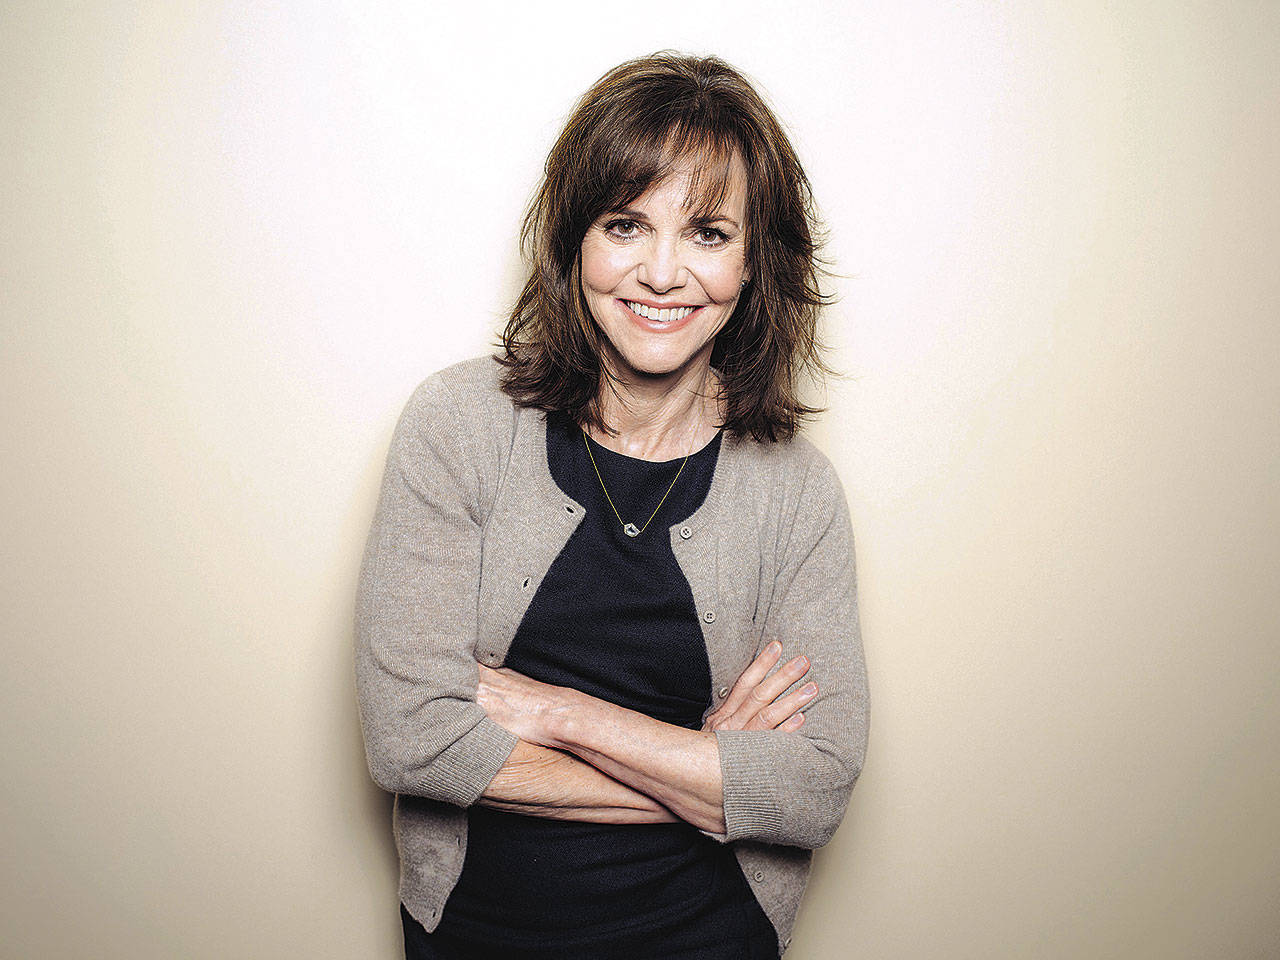 Sally Field was famous first on TV and then won Oscars. (Photo by Casey Curry/Invision)